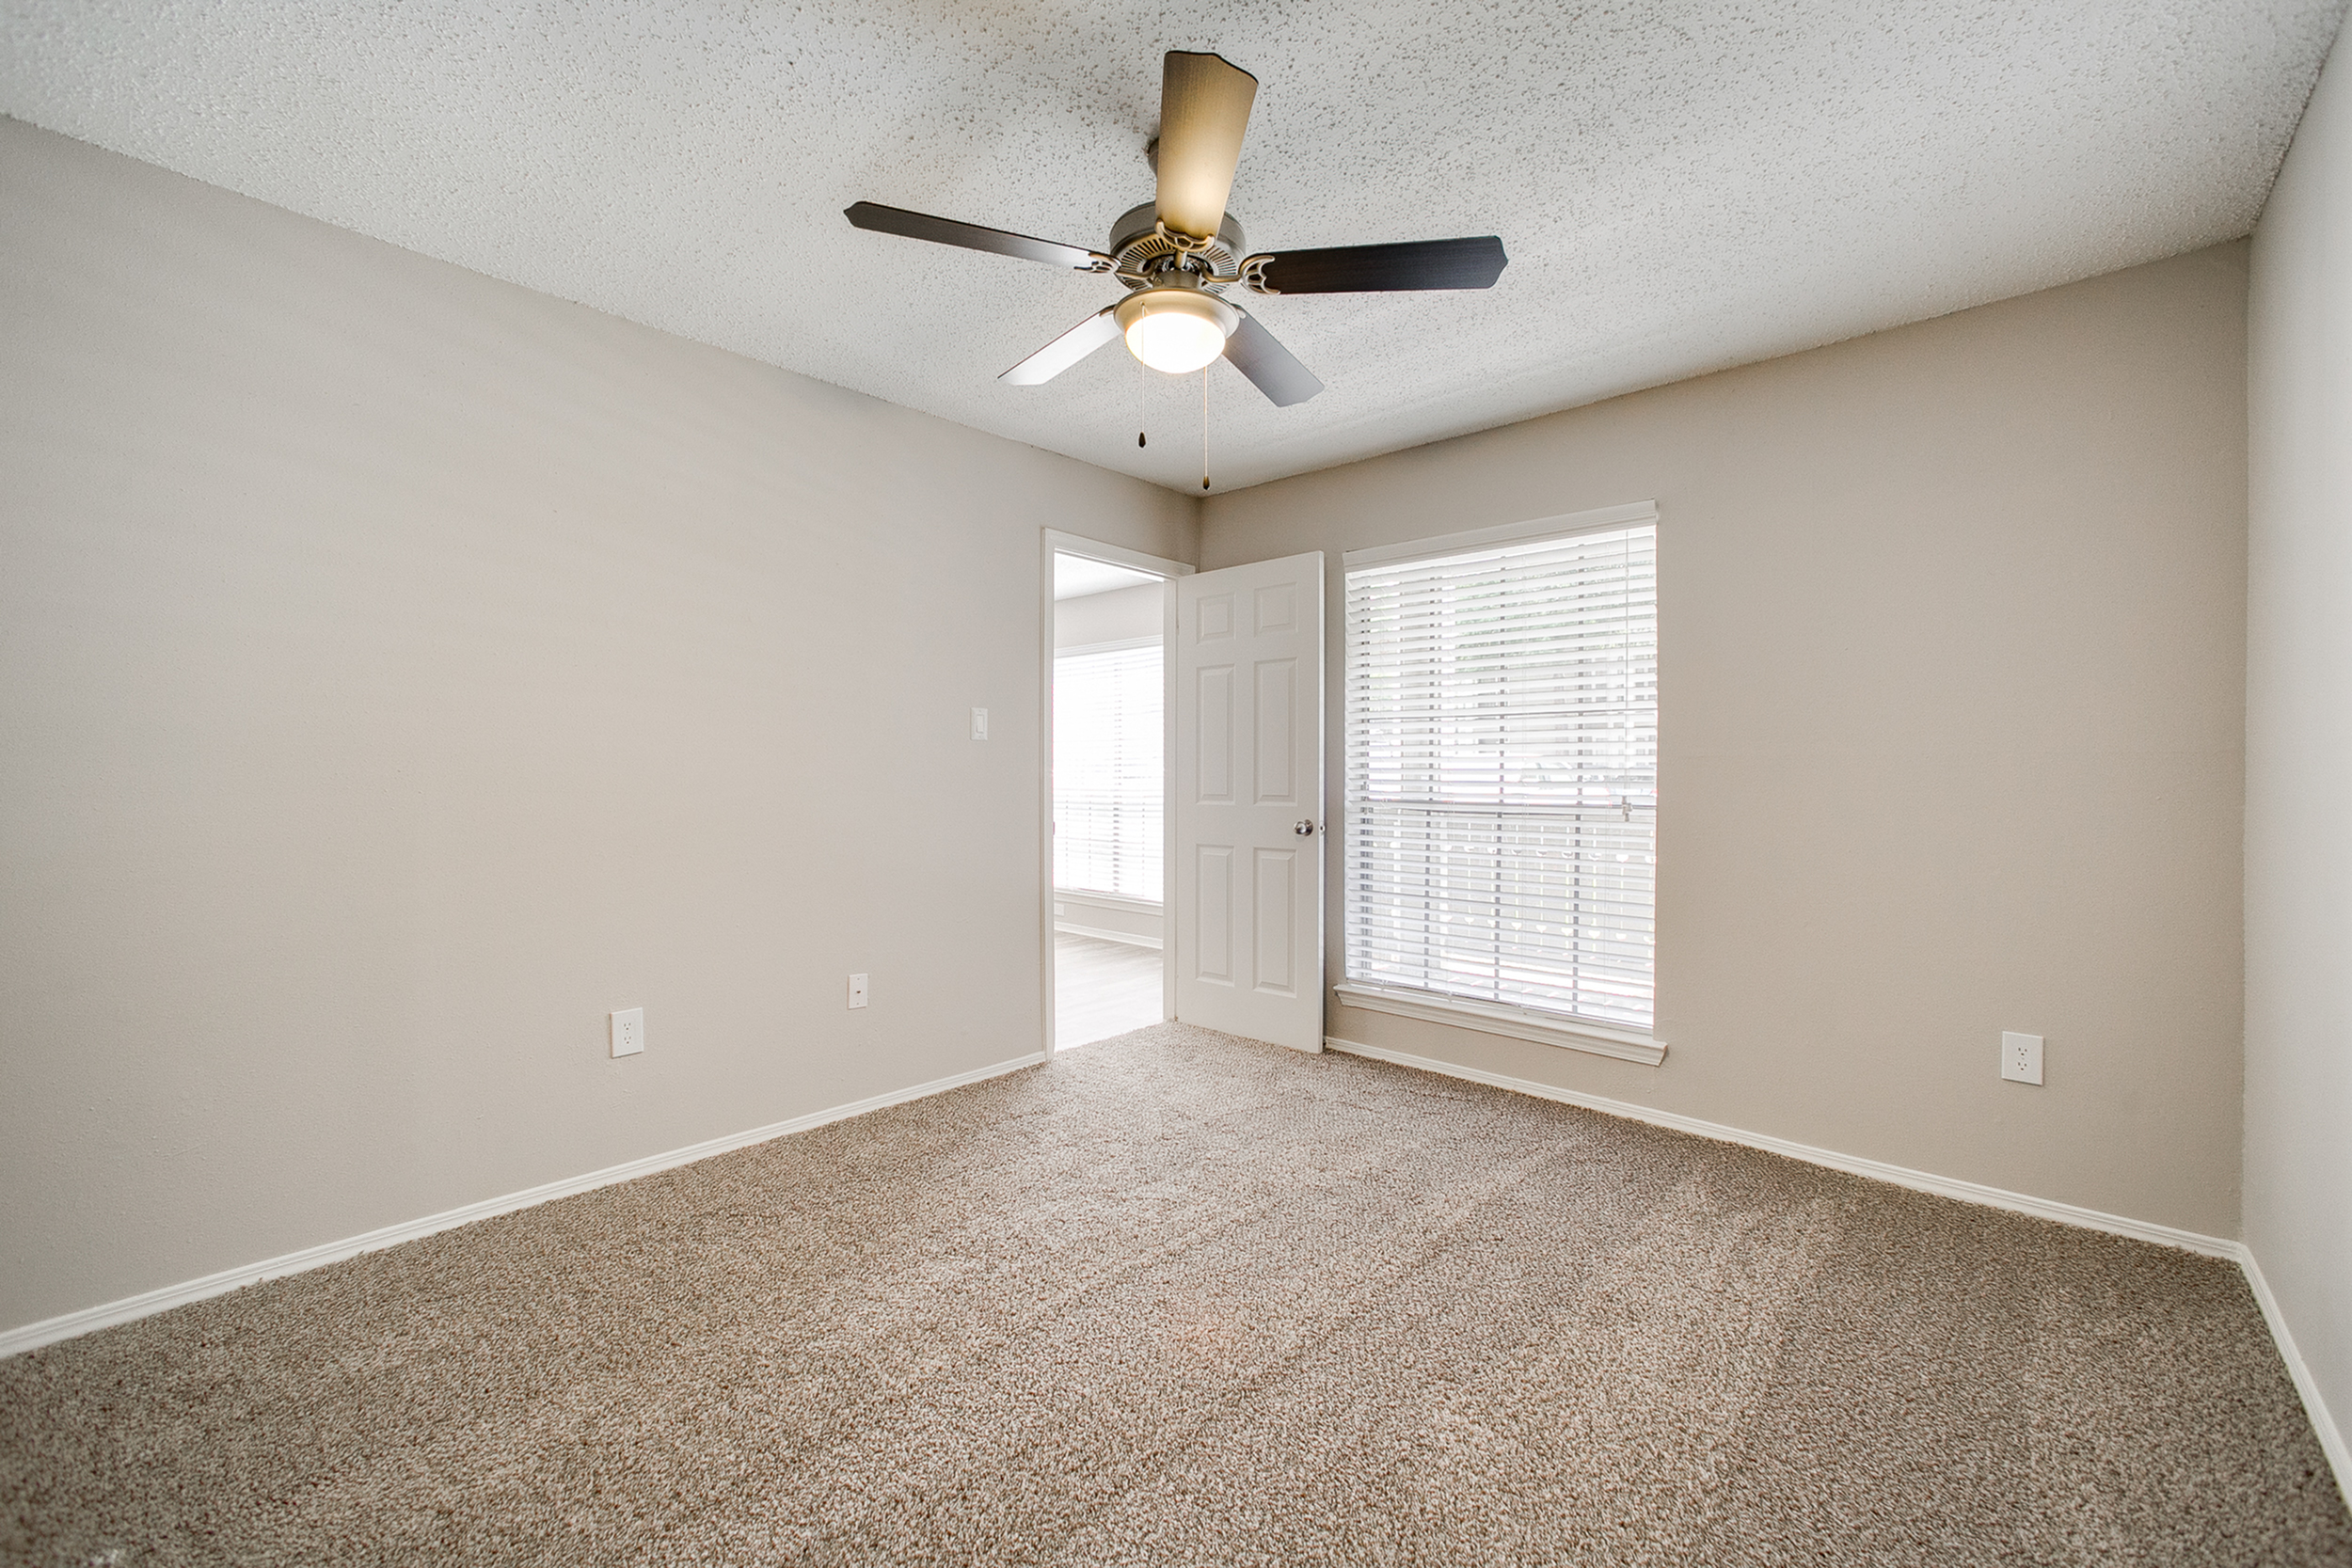 Image of Ceiling Fans for The Arbors of Las Colinas